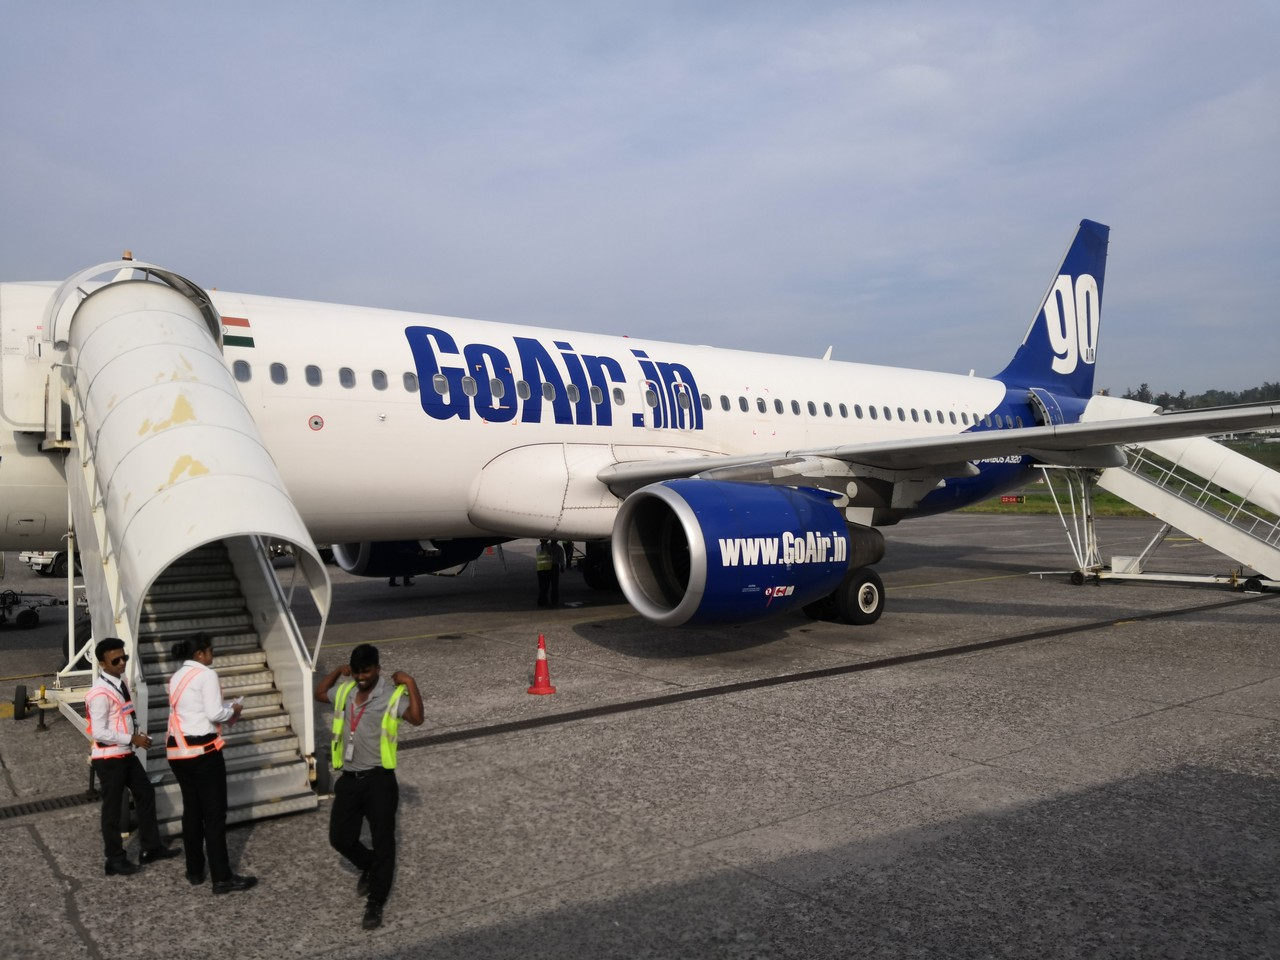 photo 009-go-air-ixw-blr-del-57